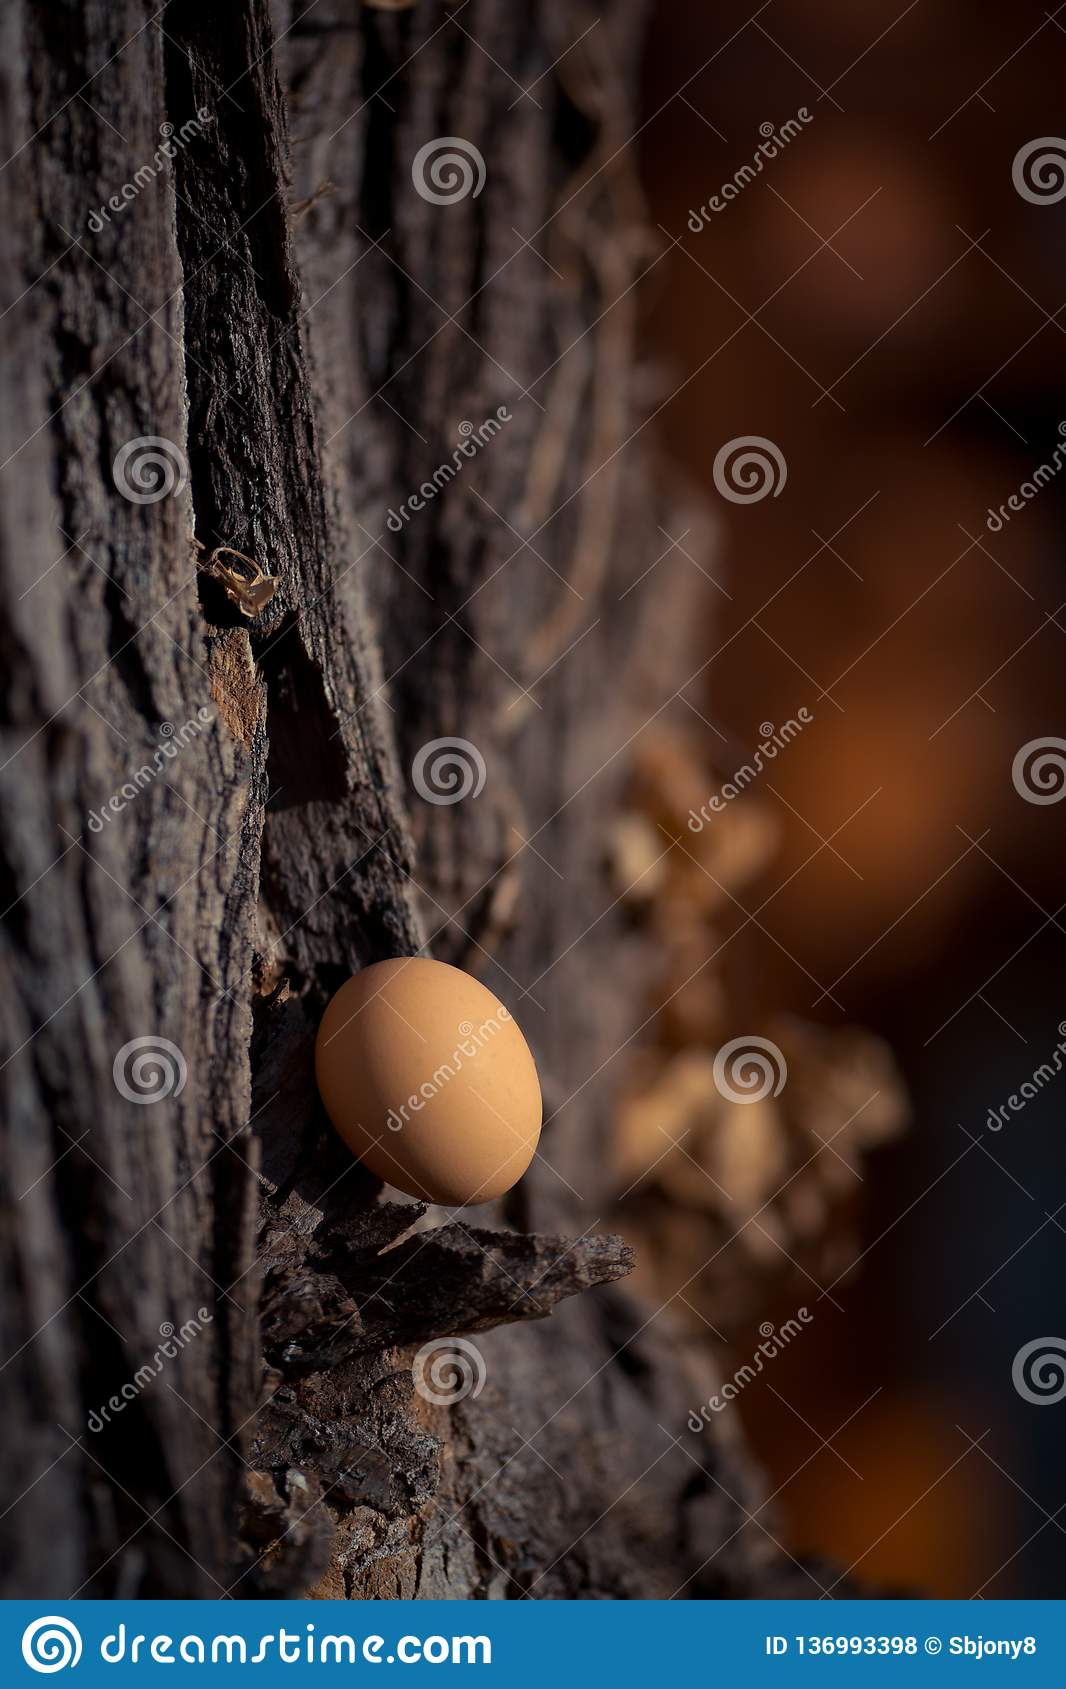 Brown hens egg on a wood. Concept. Brown hens egg on a wood. Close-up. Concept royalty free stock photos